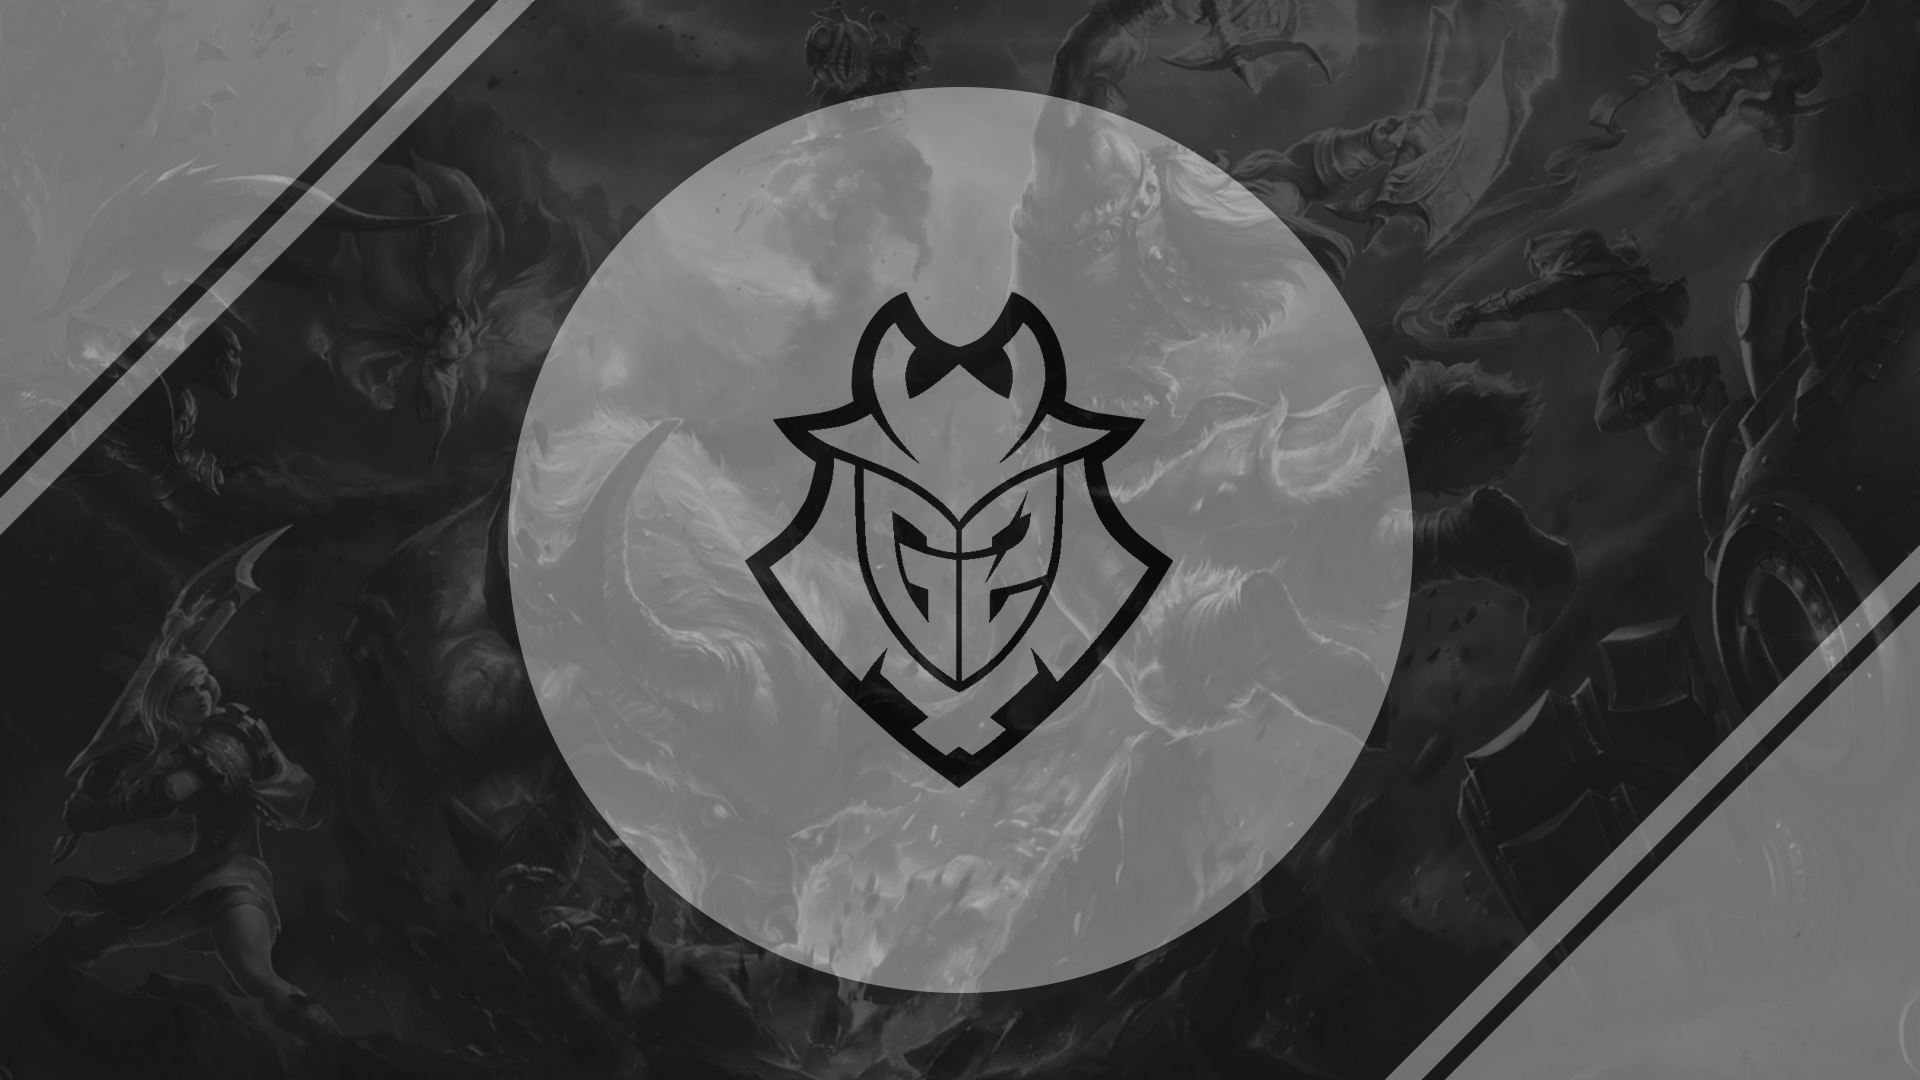 G2 Grey Color wallpaper